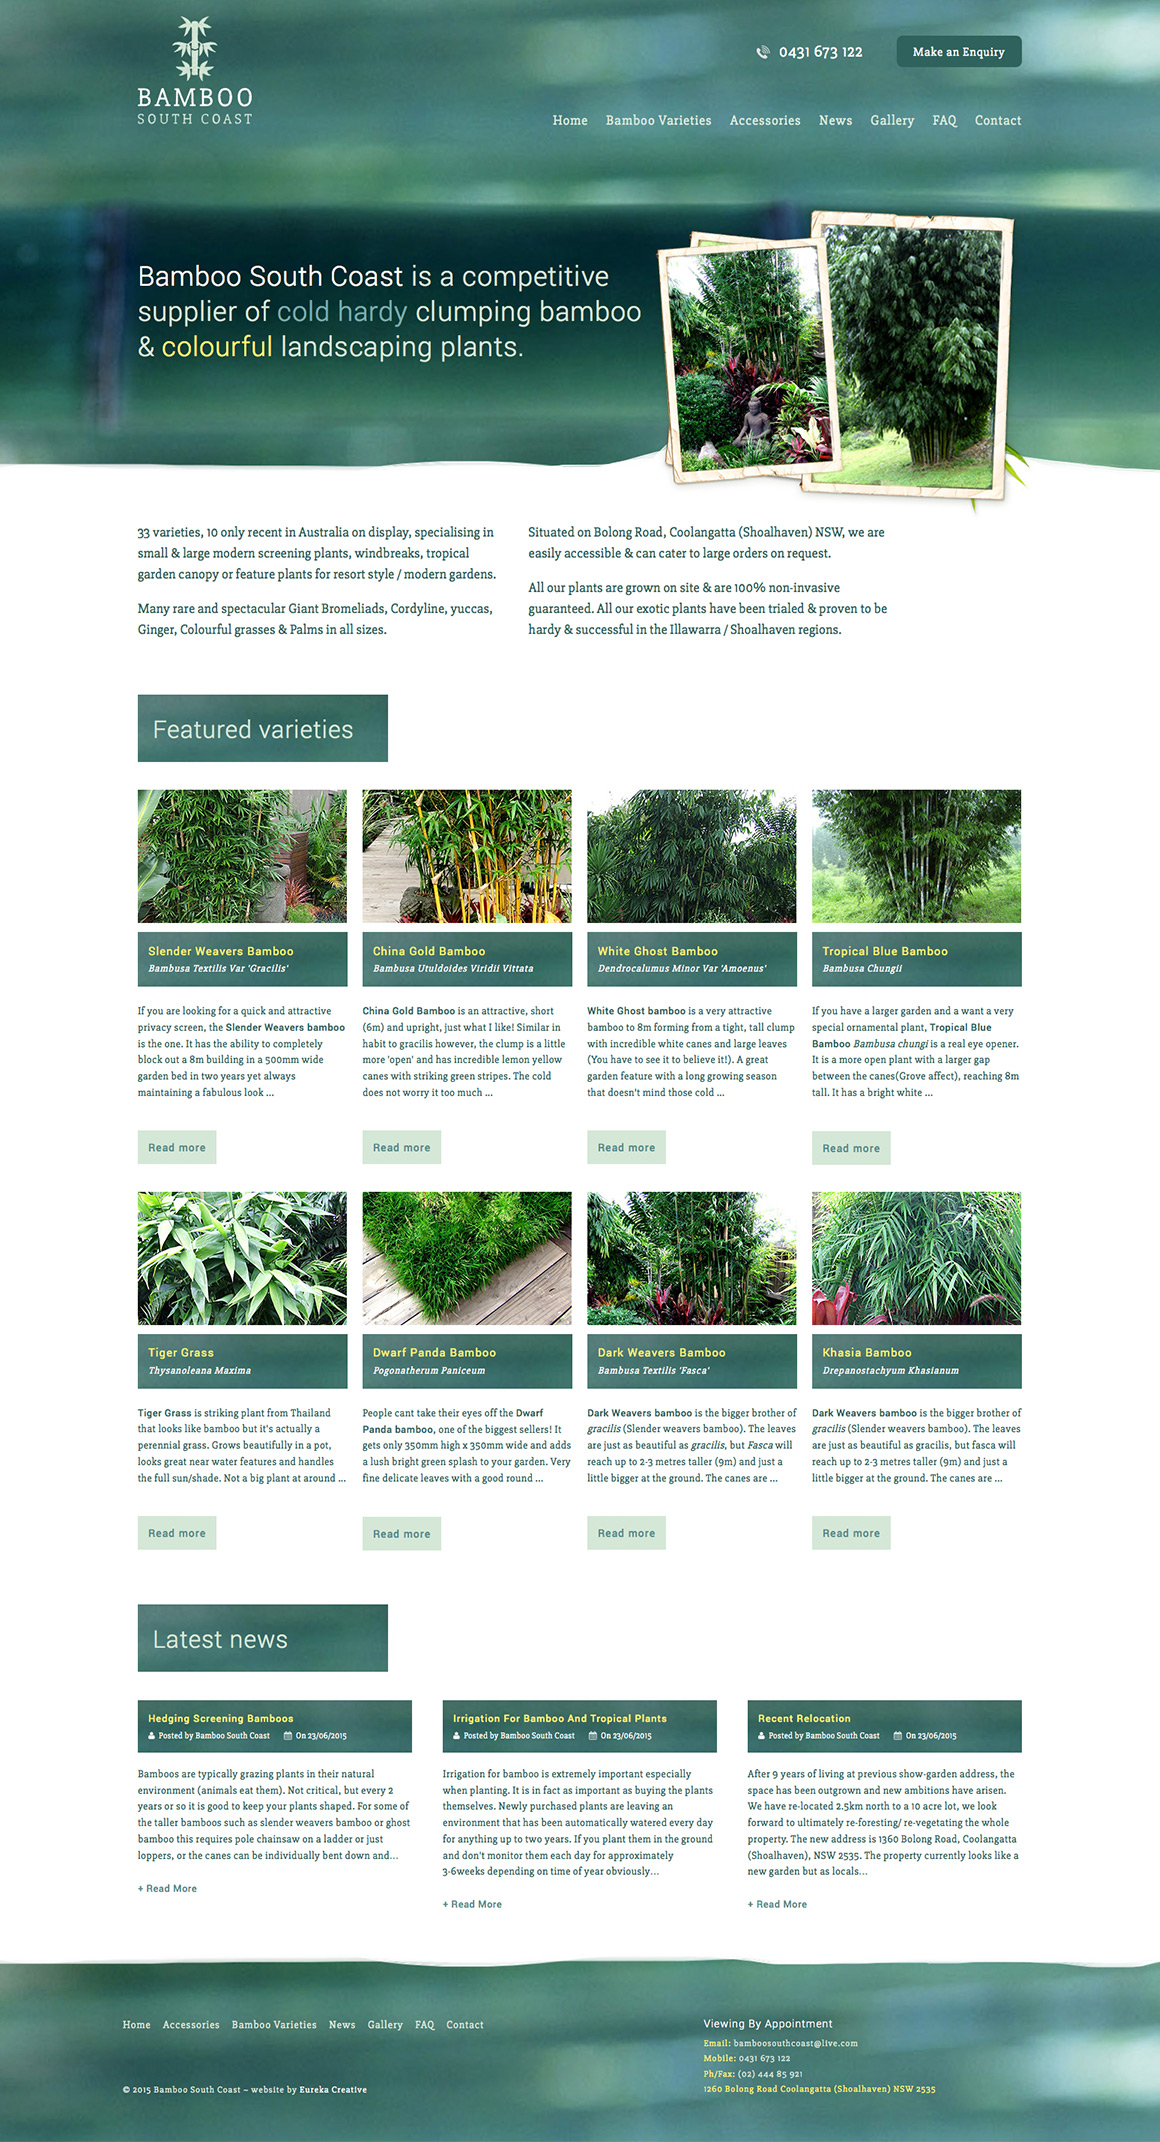 Bamboo South Coast web design and development